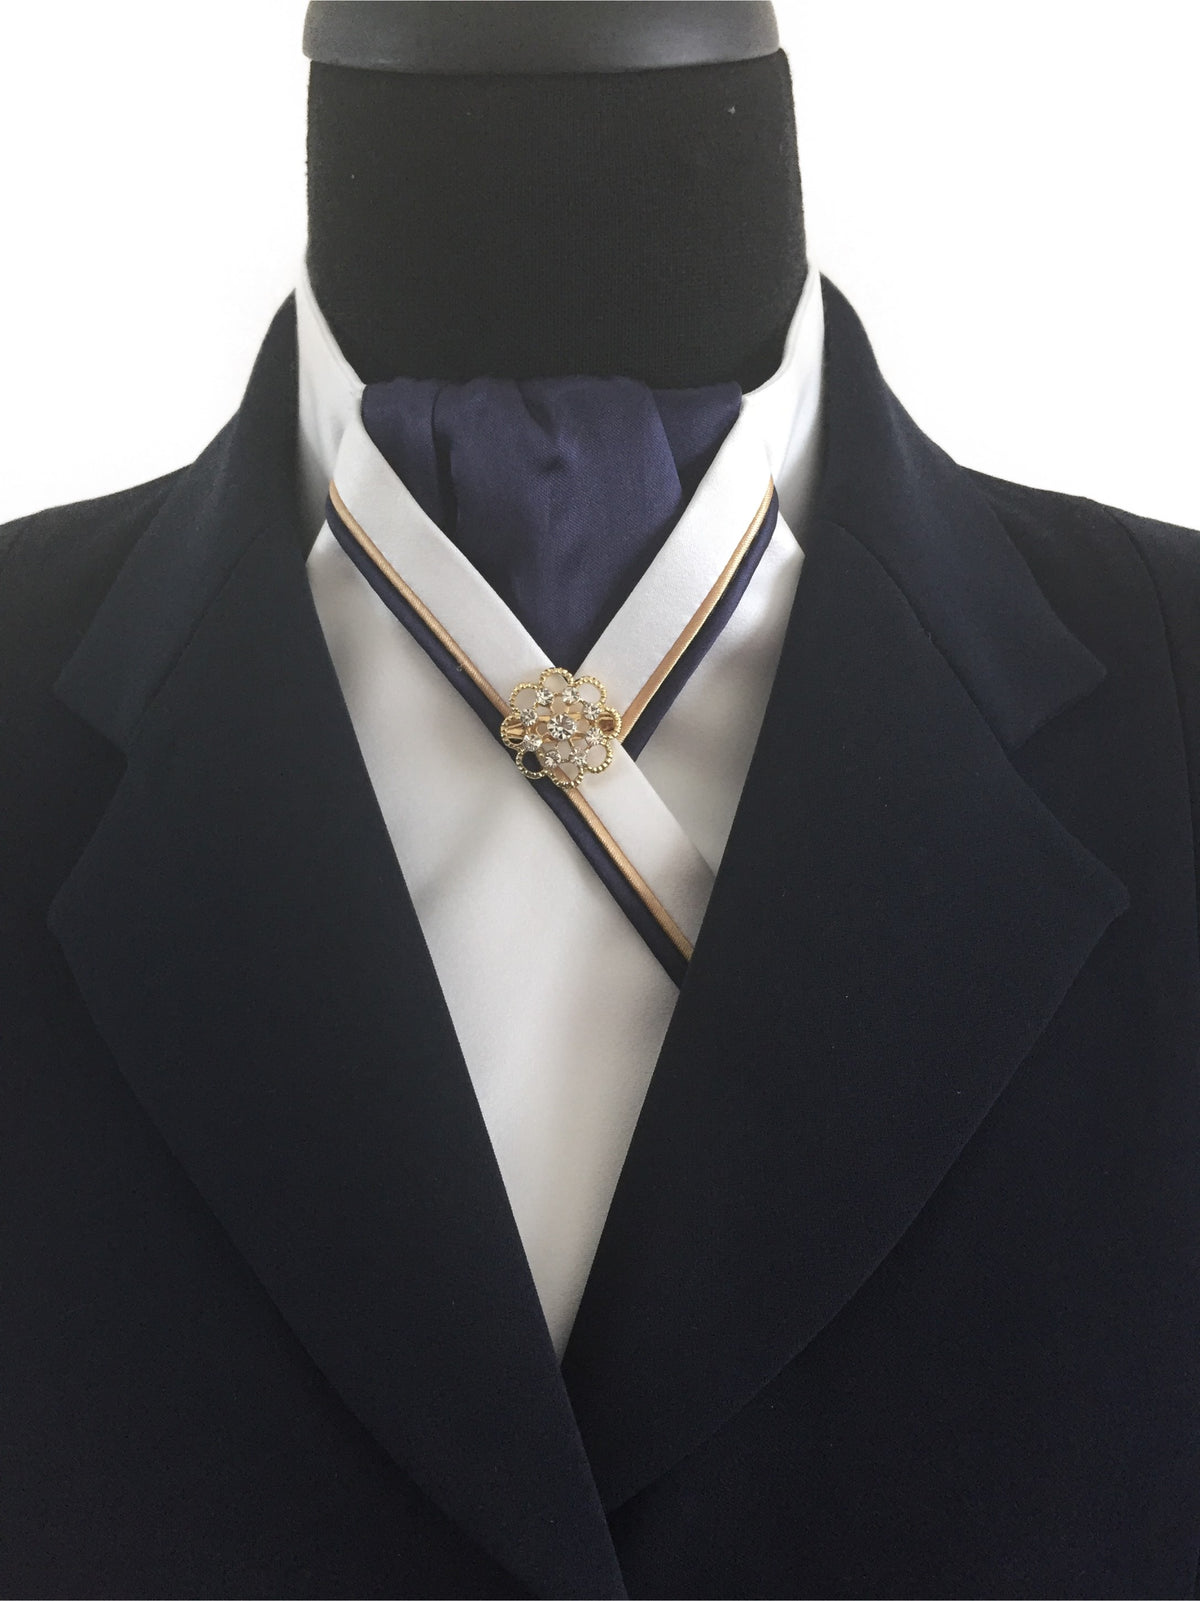 White Stock Tie with Navy Center and Navy & Gold Piping